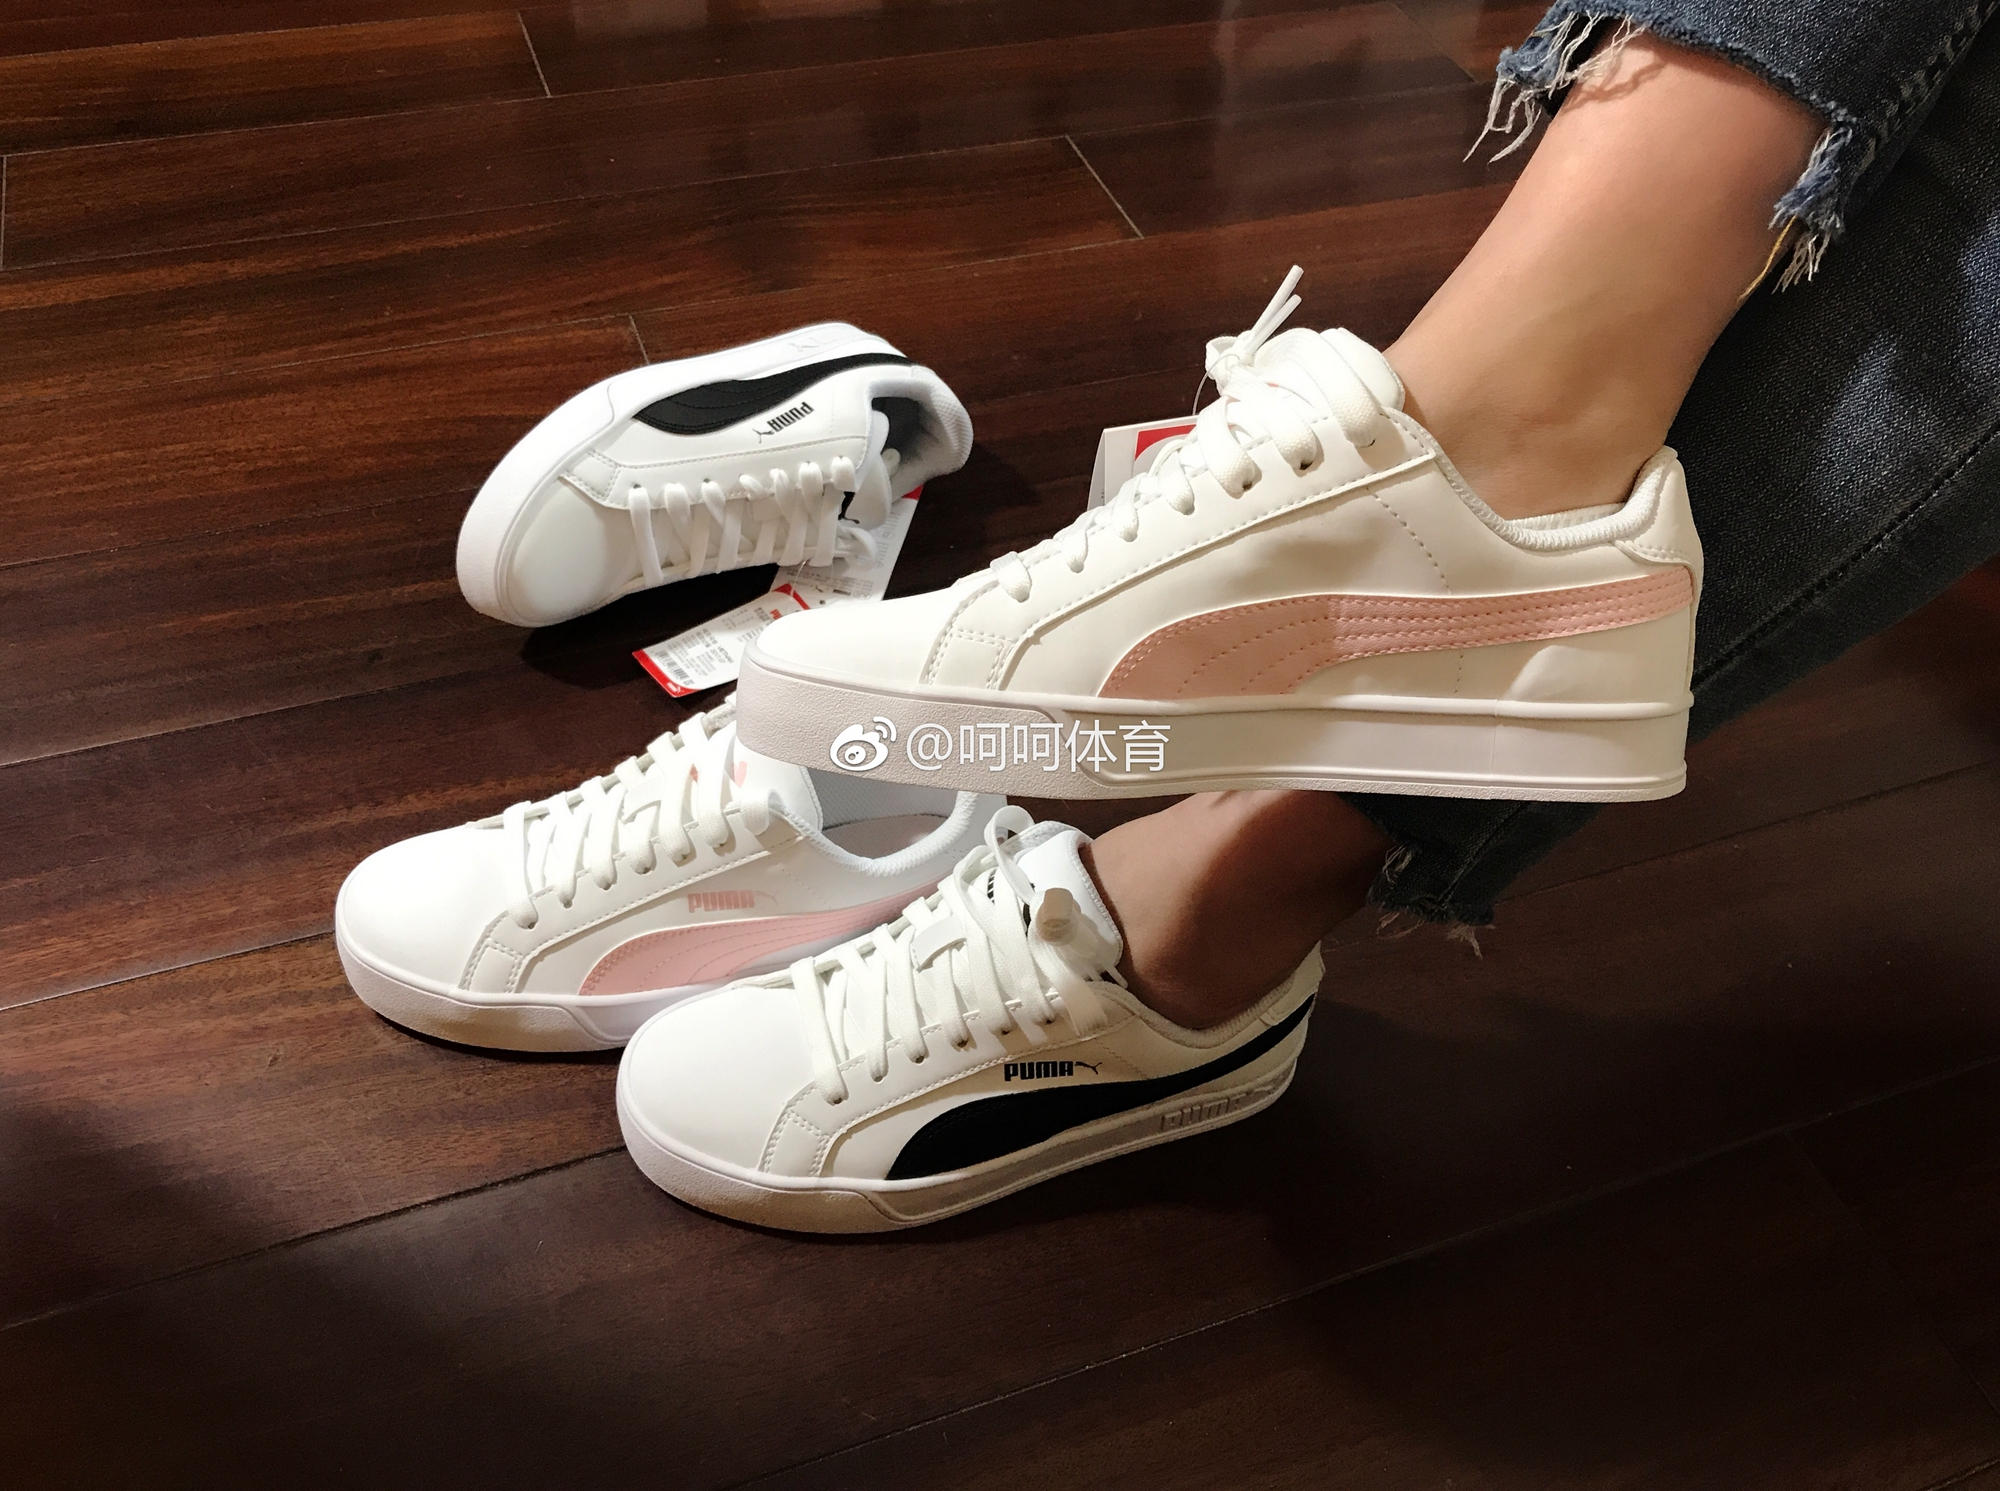 ... Puma Smash Vulc South Korea Puma cherry blossom powder womens Casual  Shoes 359622 15 on feet ... 396fe5387